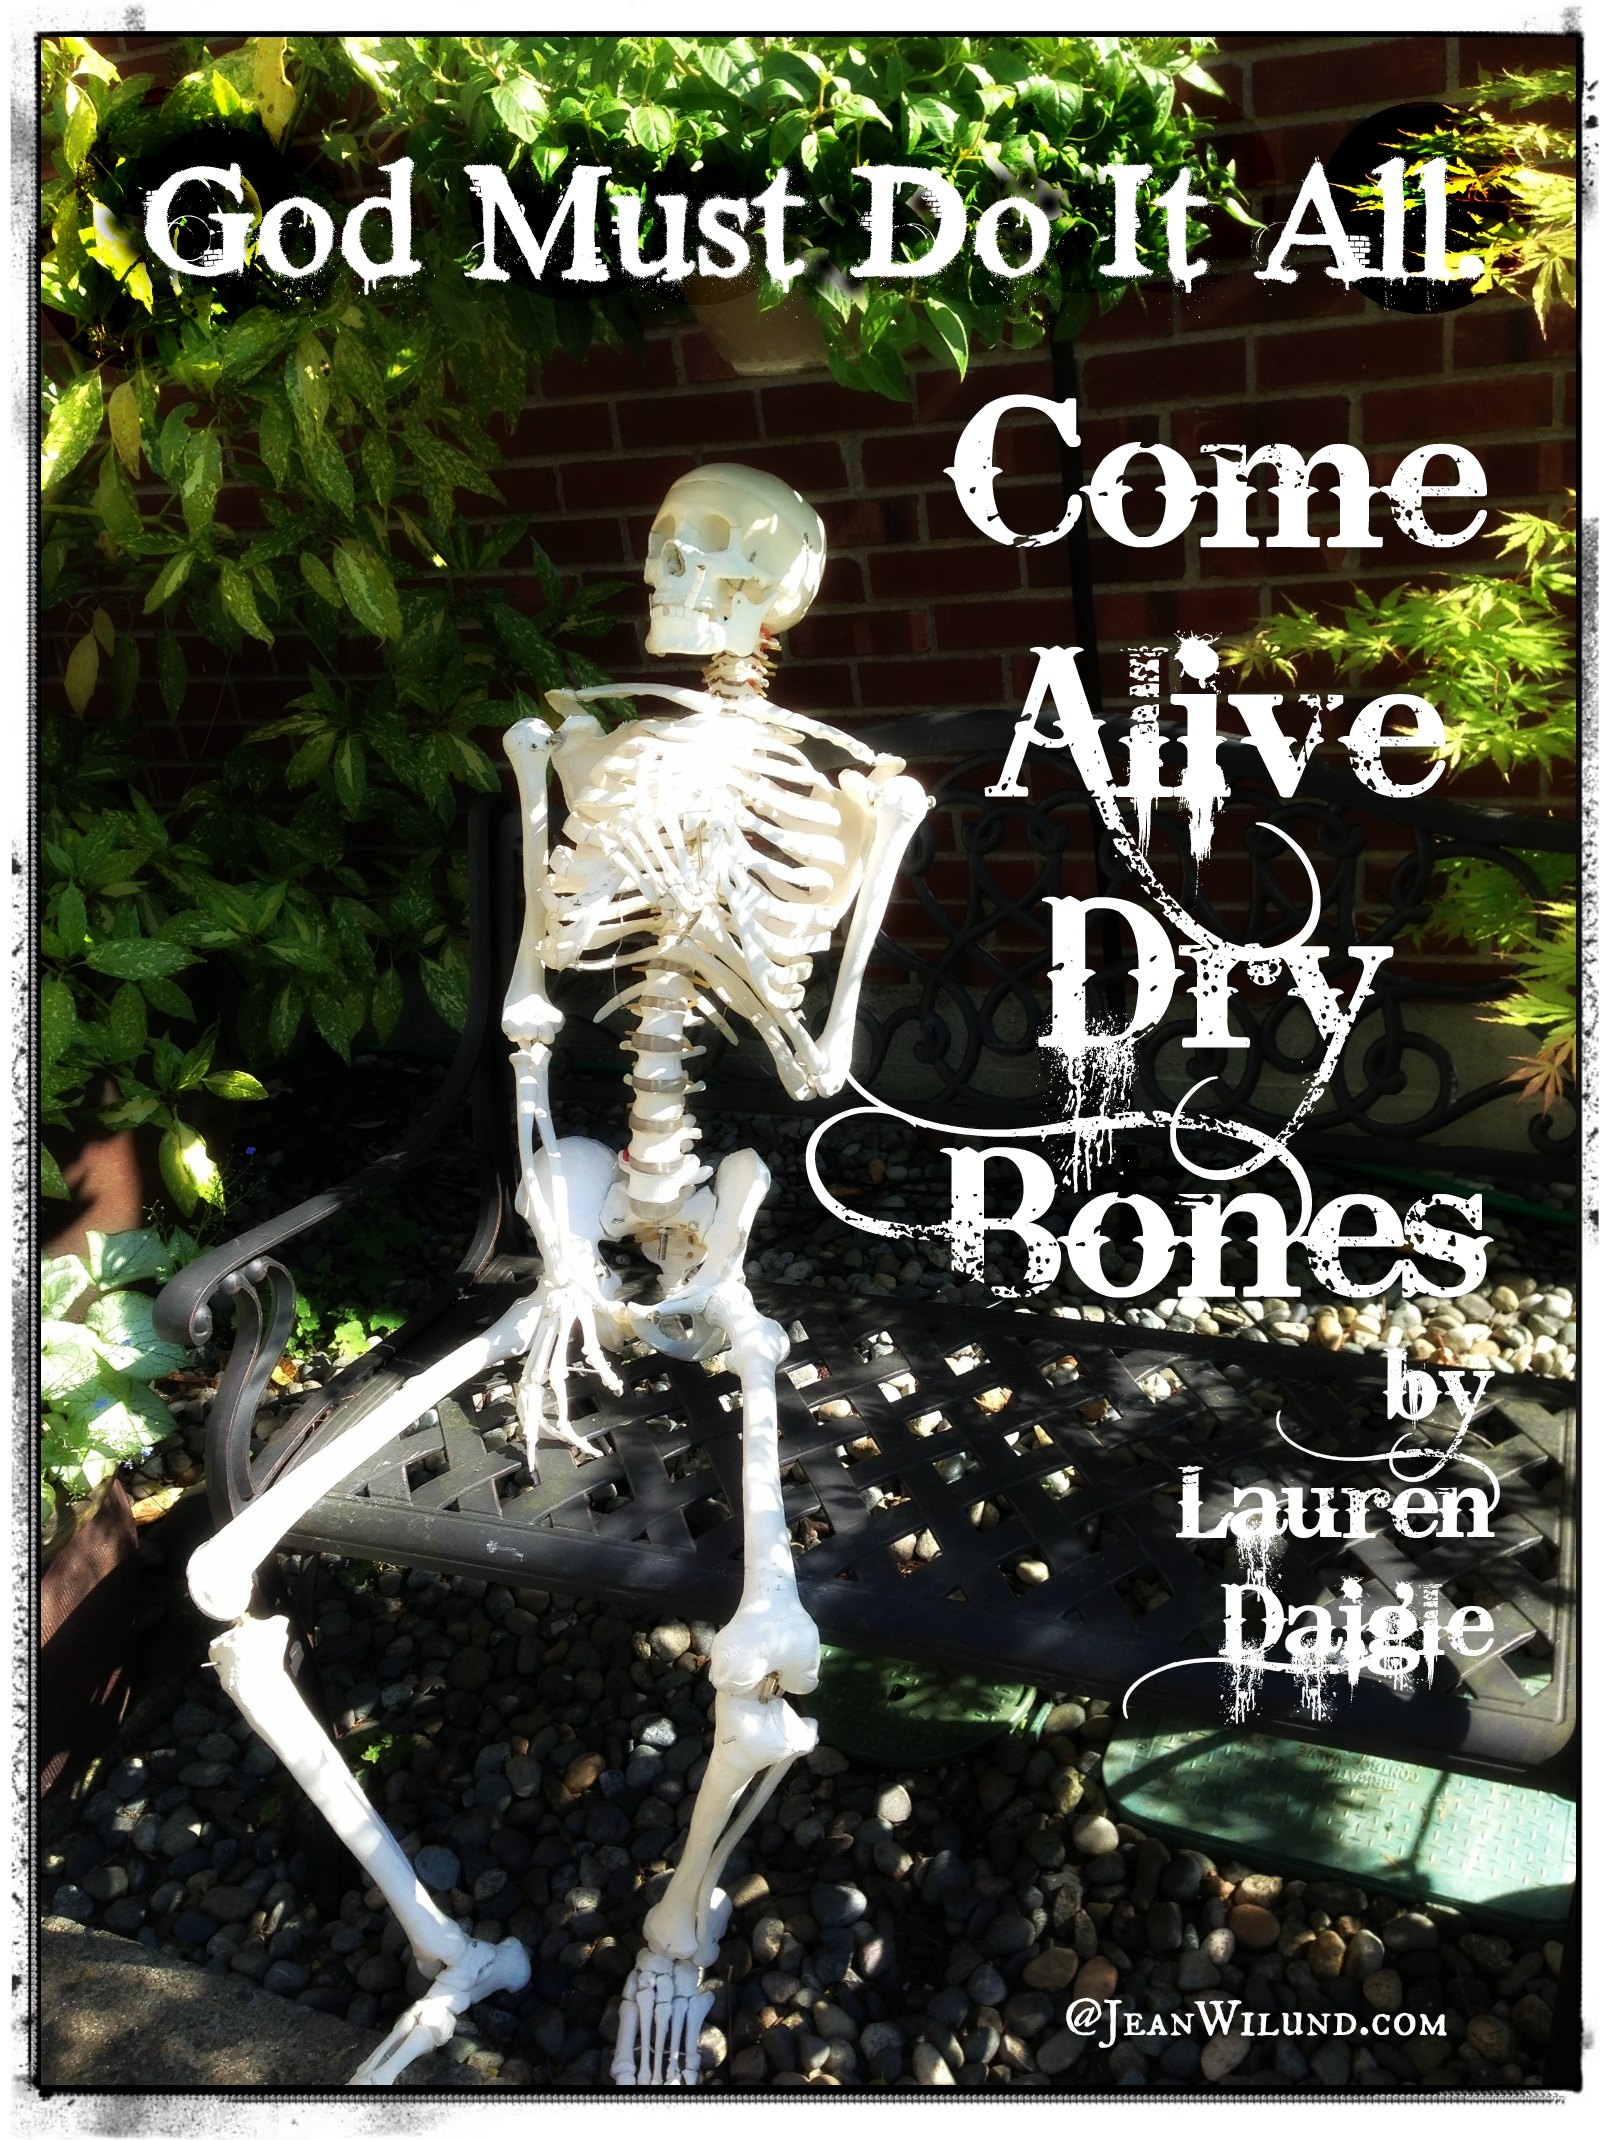 Click to listen to Lauren Daigle sing Come Alive Dry Bones and read a powerful message if you've ever felt like dry bones or loved someone who is. God must do it all. Ezekiel 37 & Zechariah 4:6